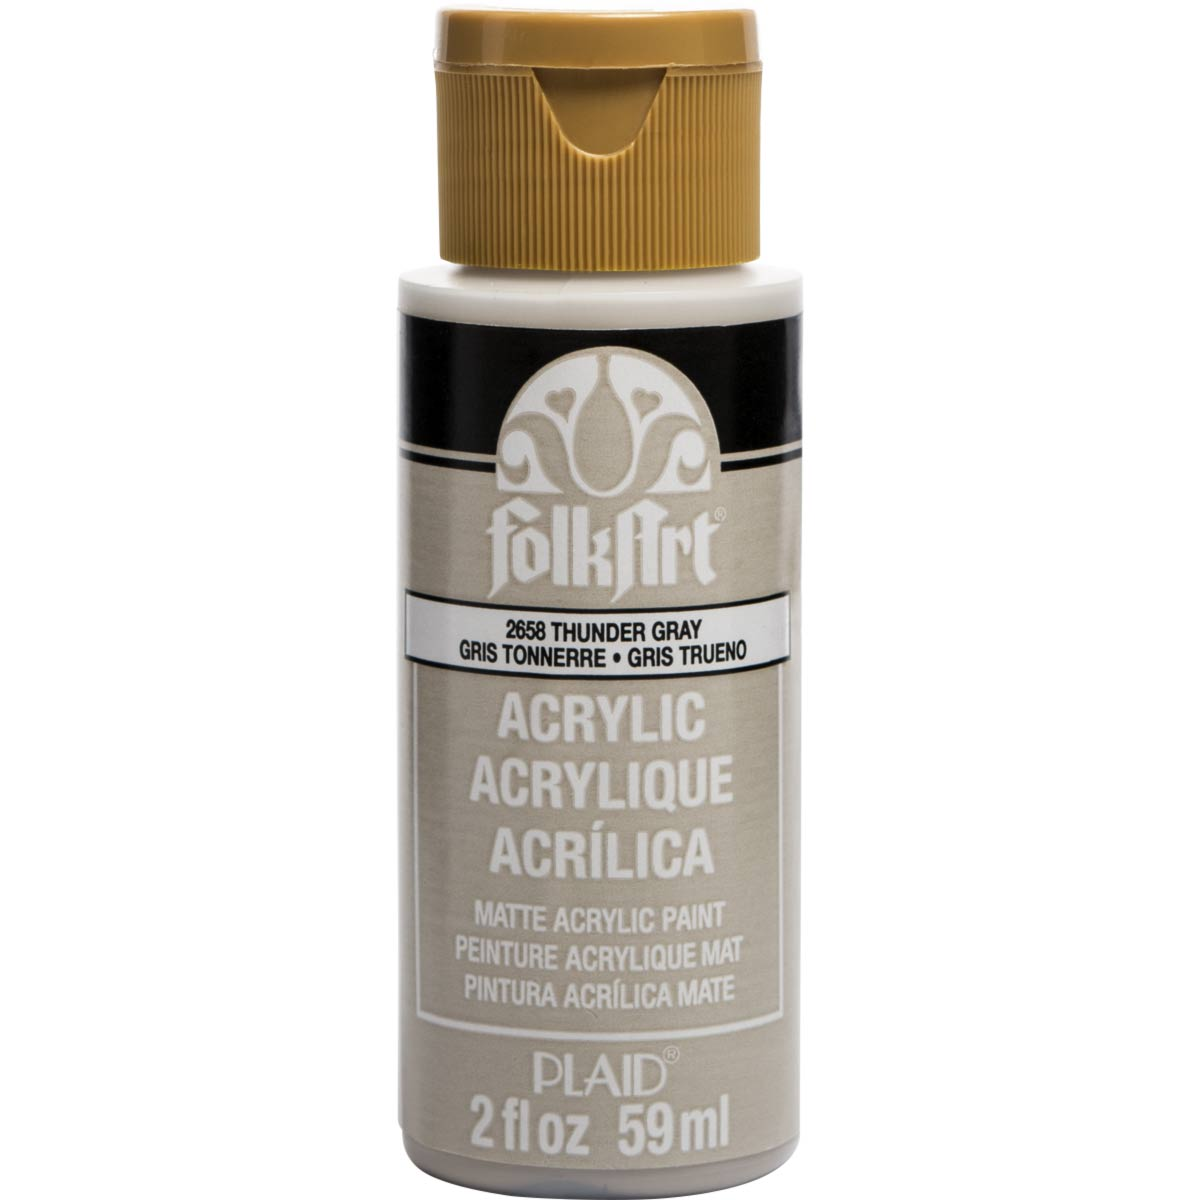 FolkArt ® Acrylic Colors - Thunder Gray, 2 oz. - 2658